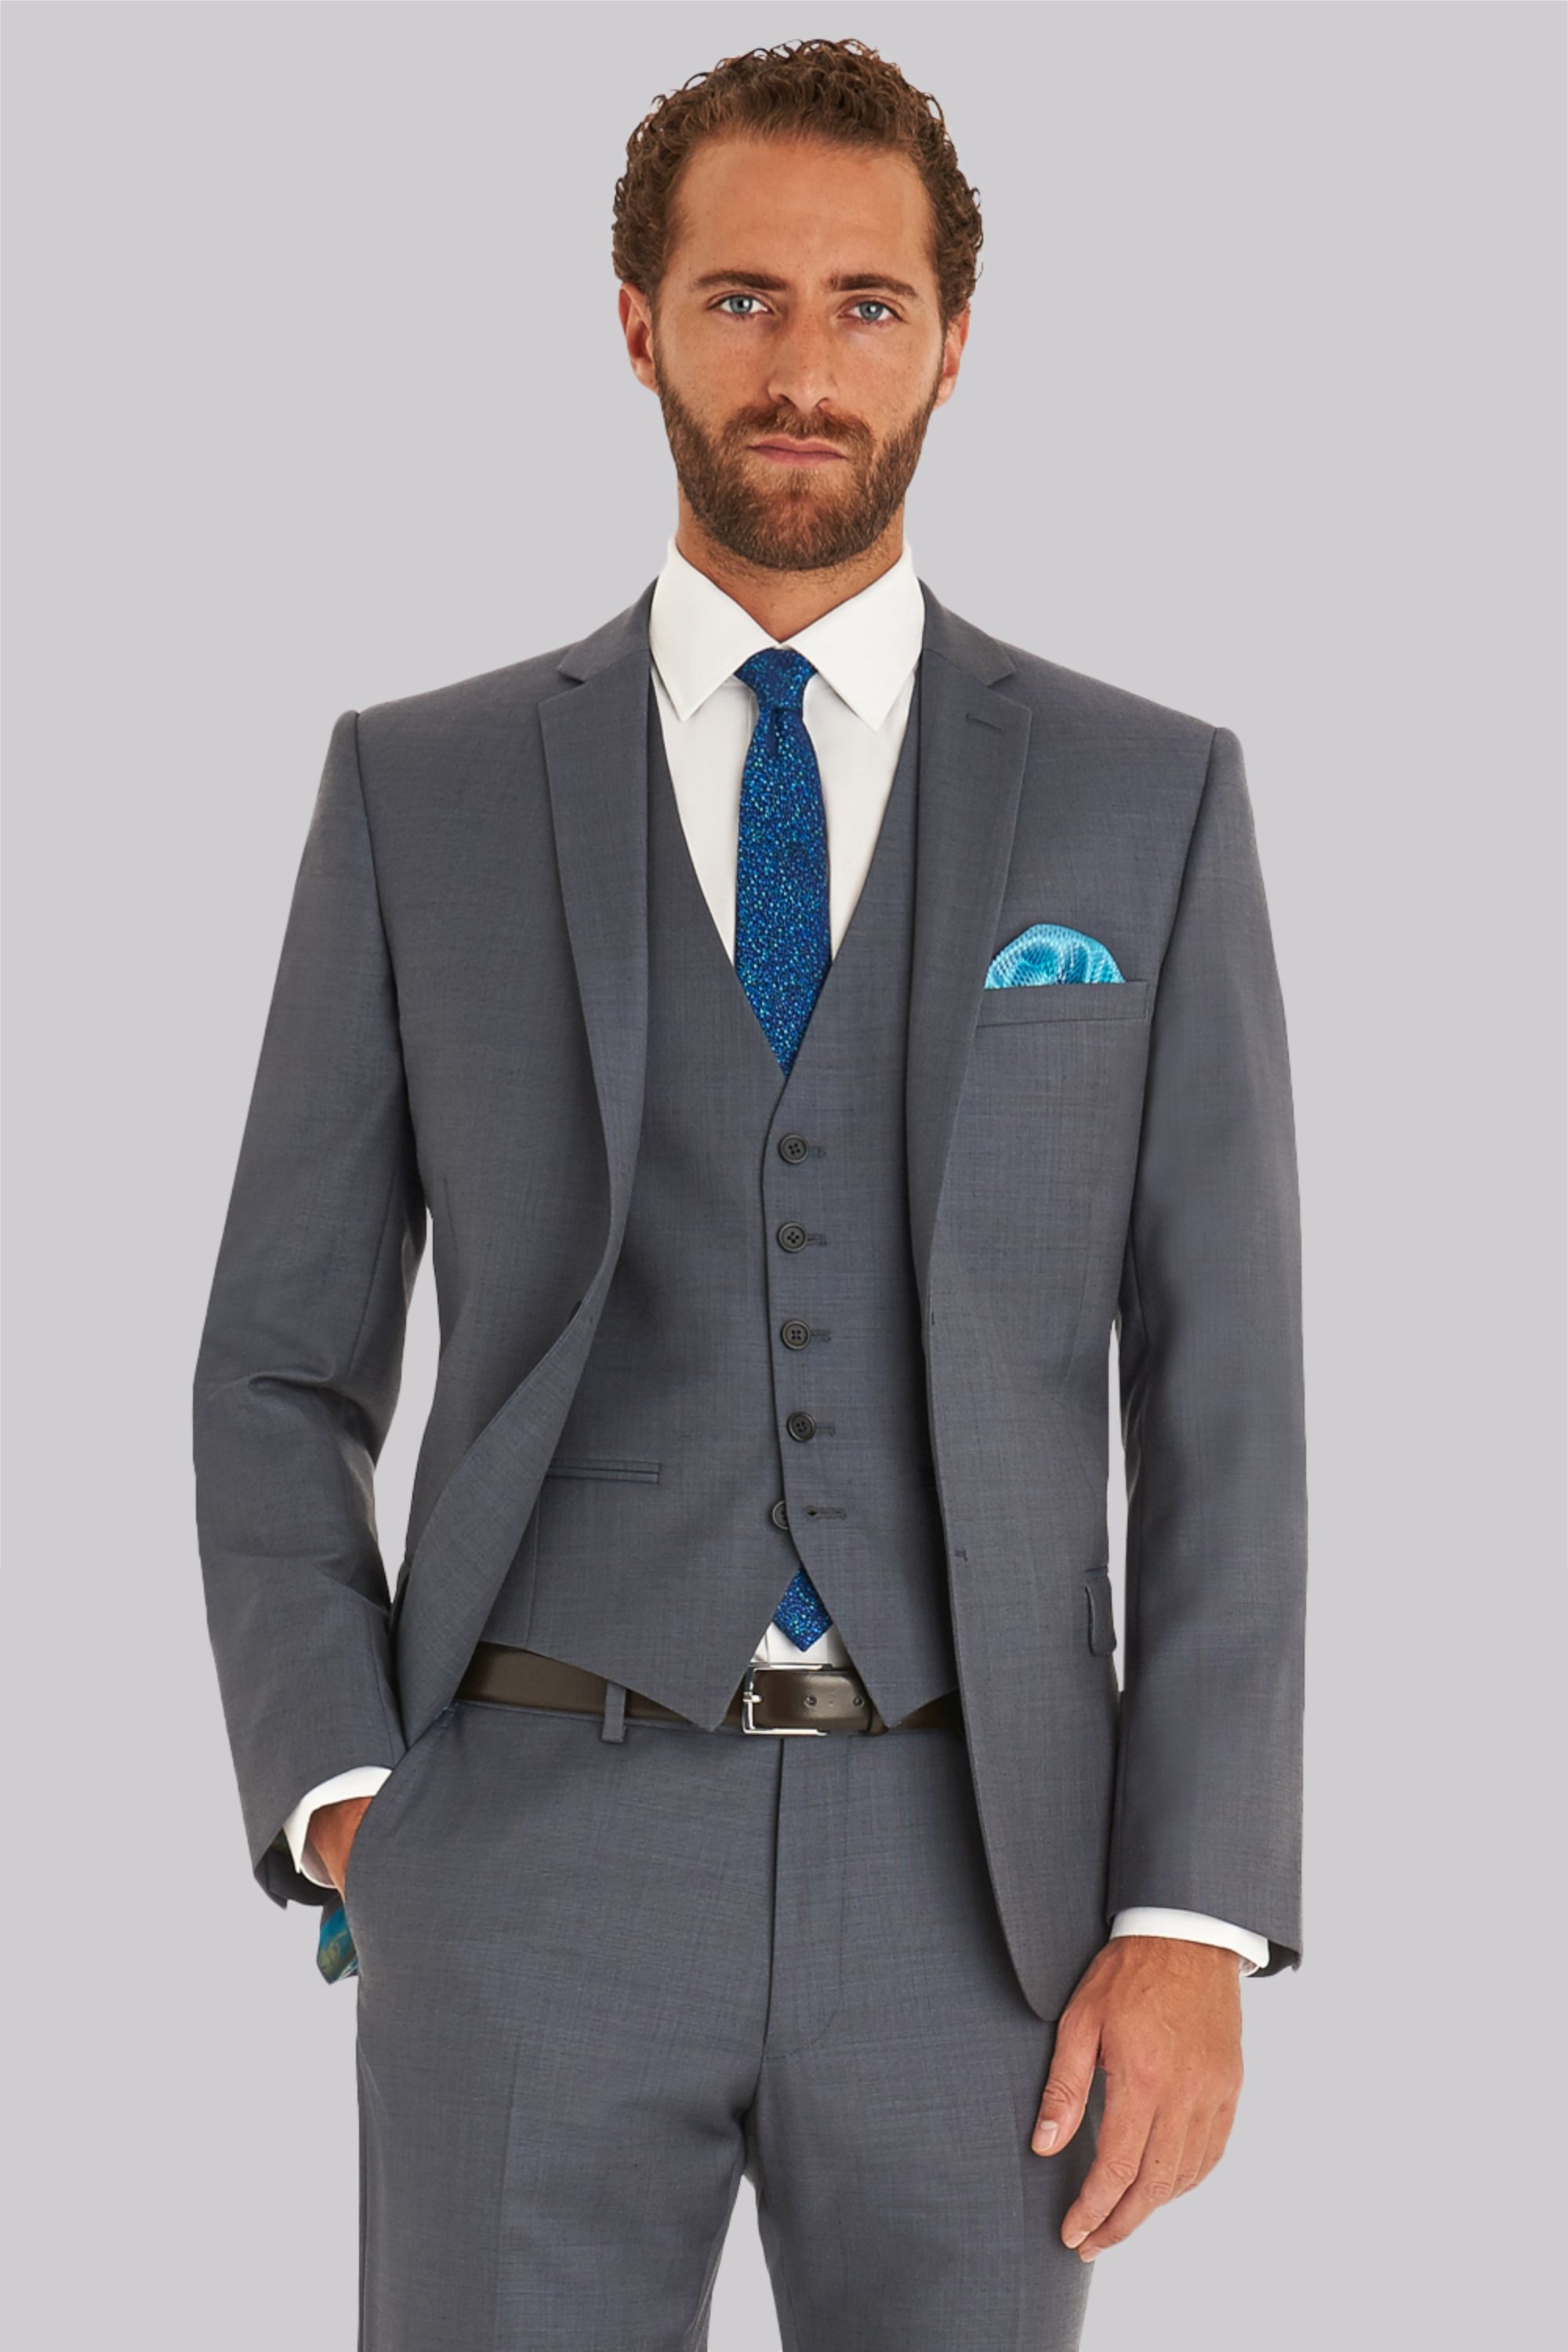 7909139d4e844 Ted Baker Tailored Fit Steel Grey Jacket in 2019